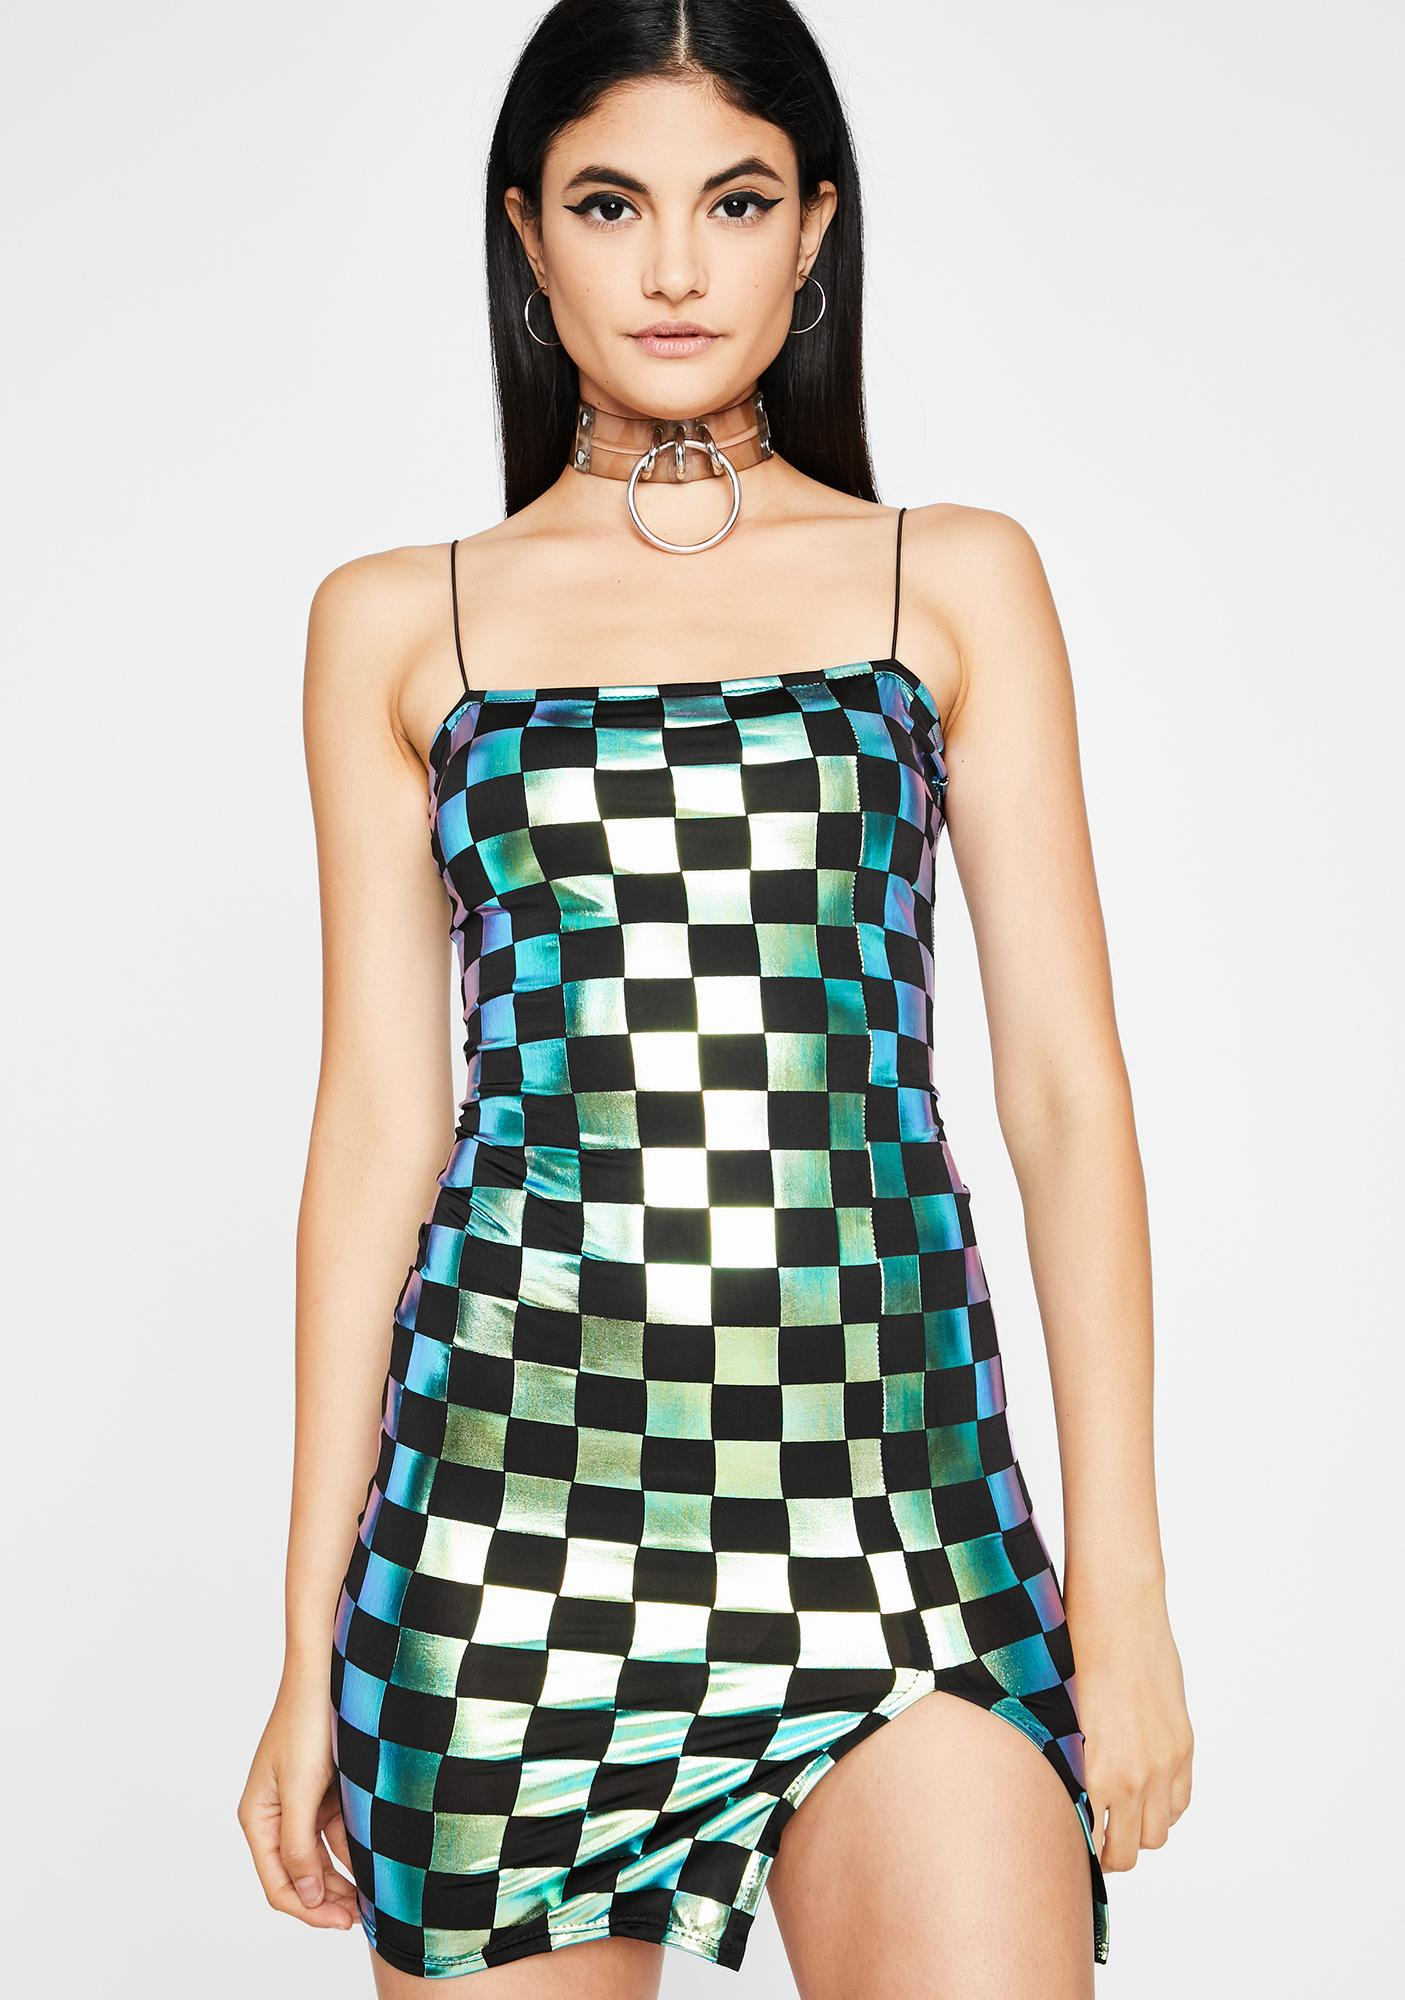 Cash Start Your Engines Metallic Dress